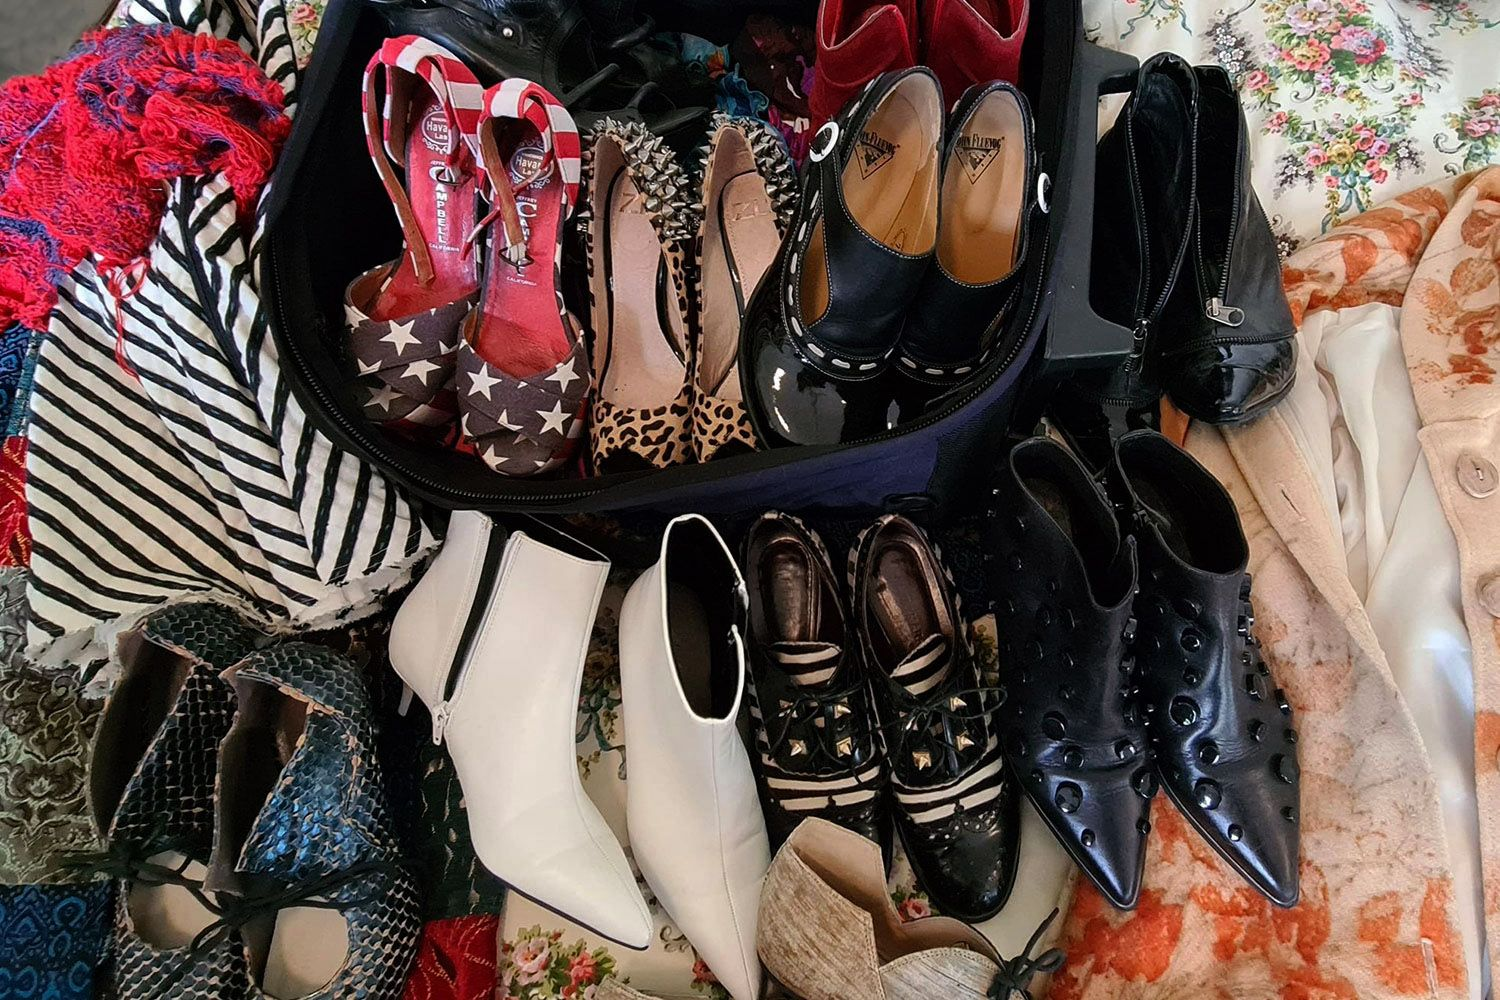 Packing Shoes for an Italian Holiday